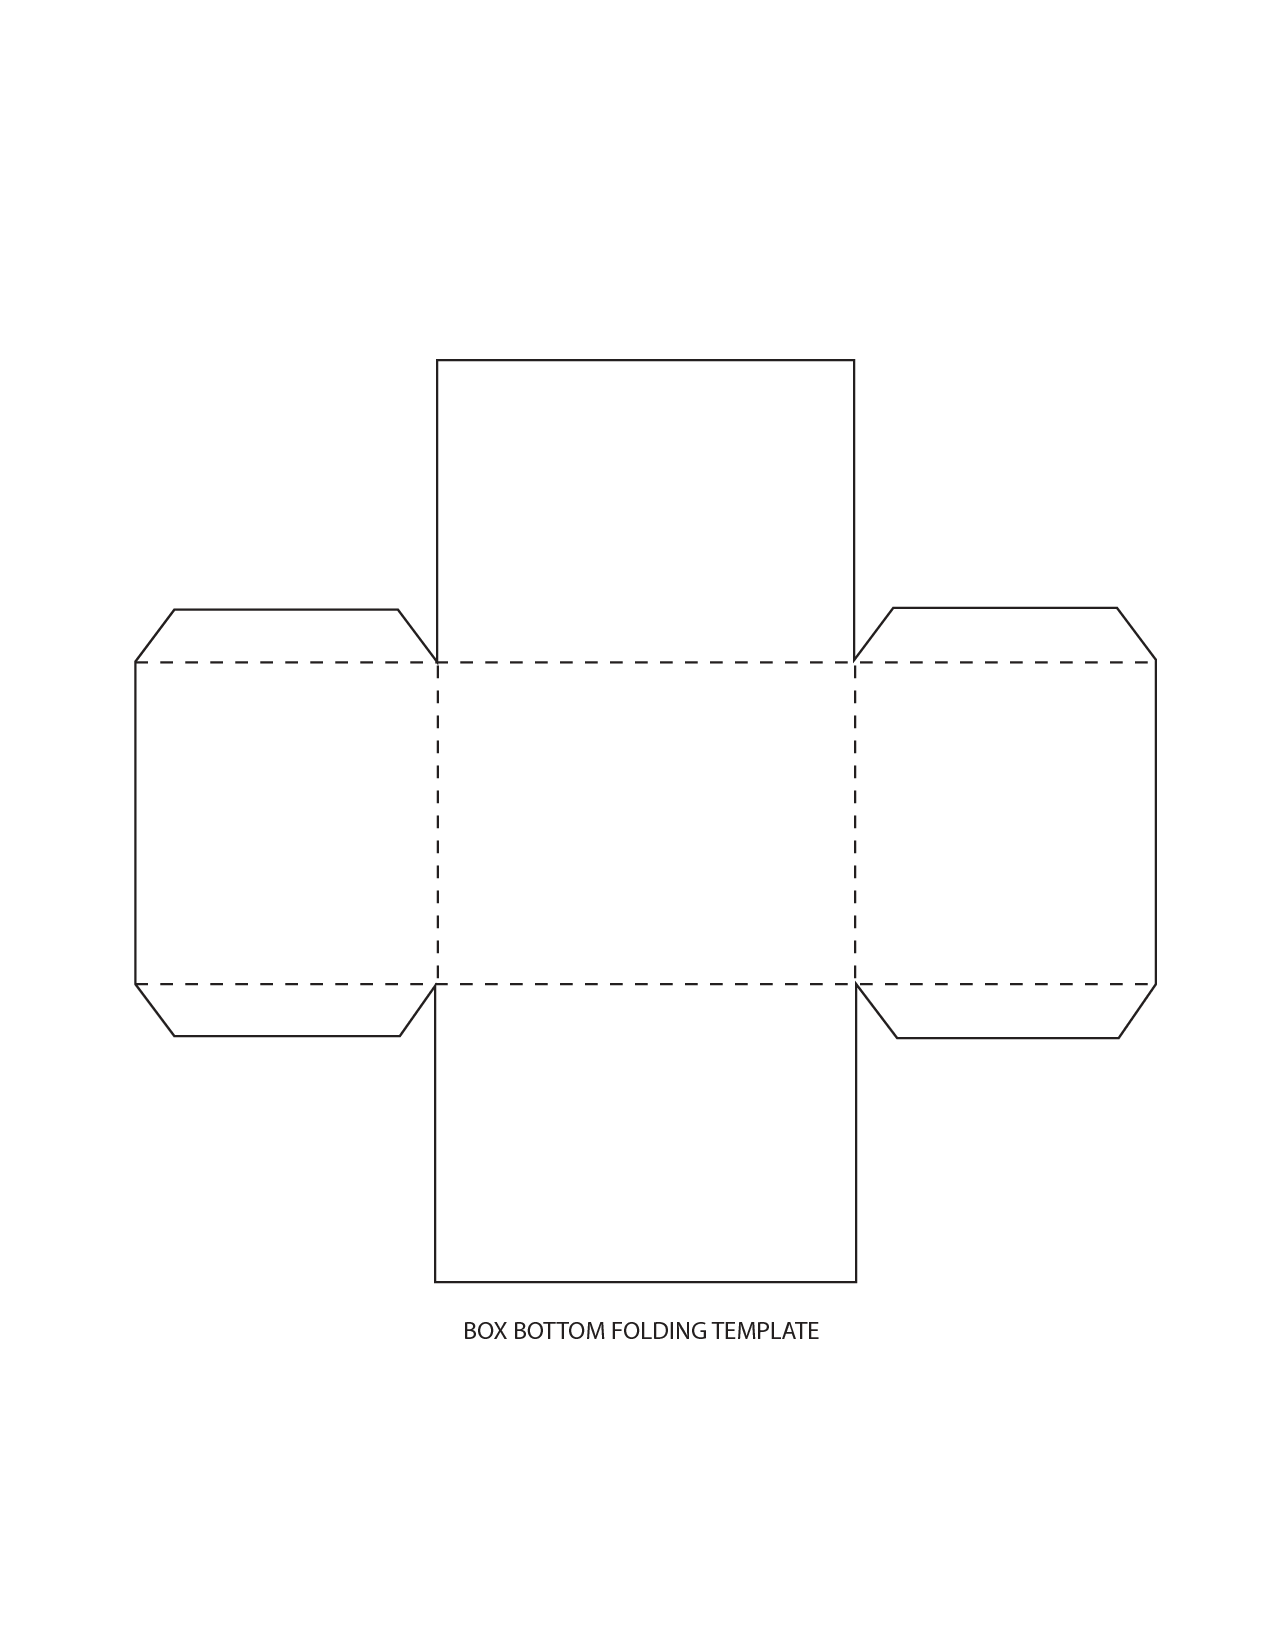 cookie box templates download as pdf box templates pinterest box templates template and pdf. Black Bedroom Furniture Sets. Home Design Ideas